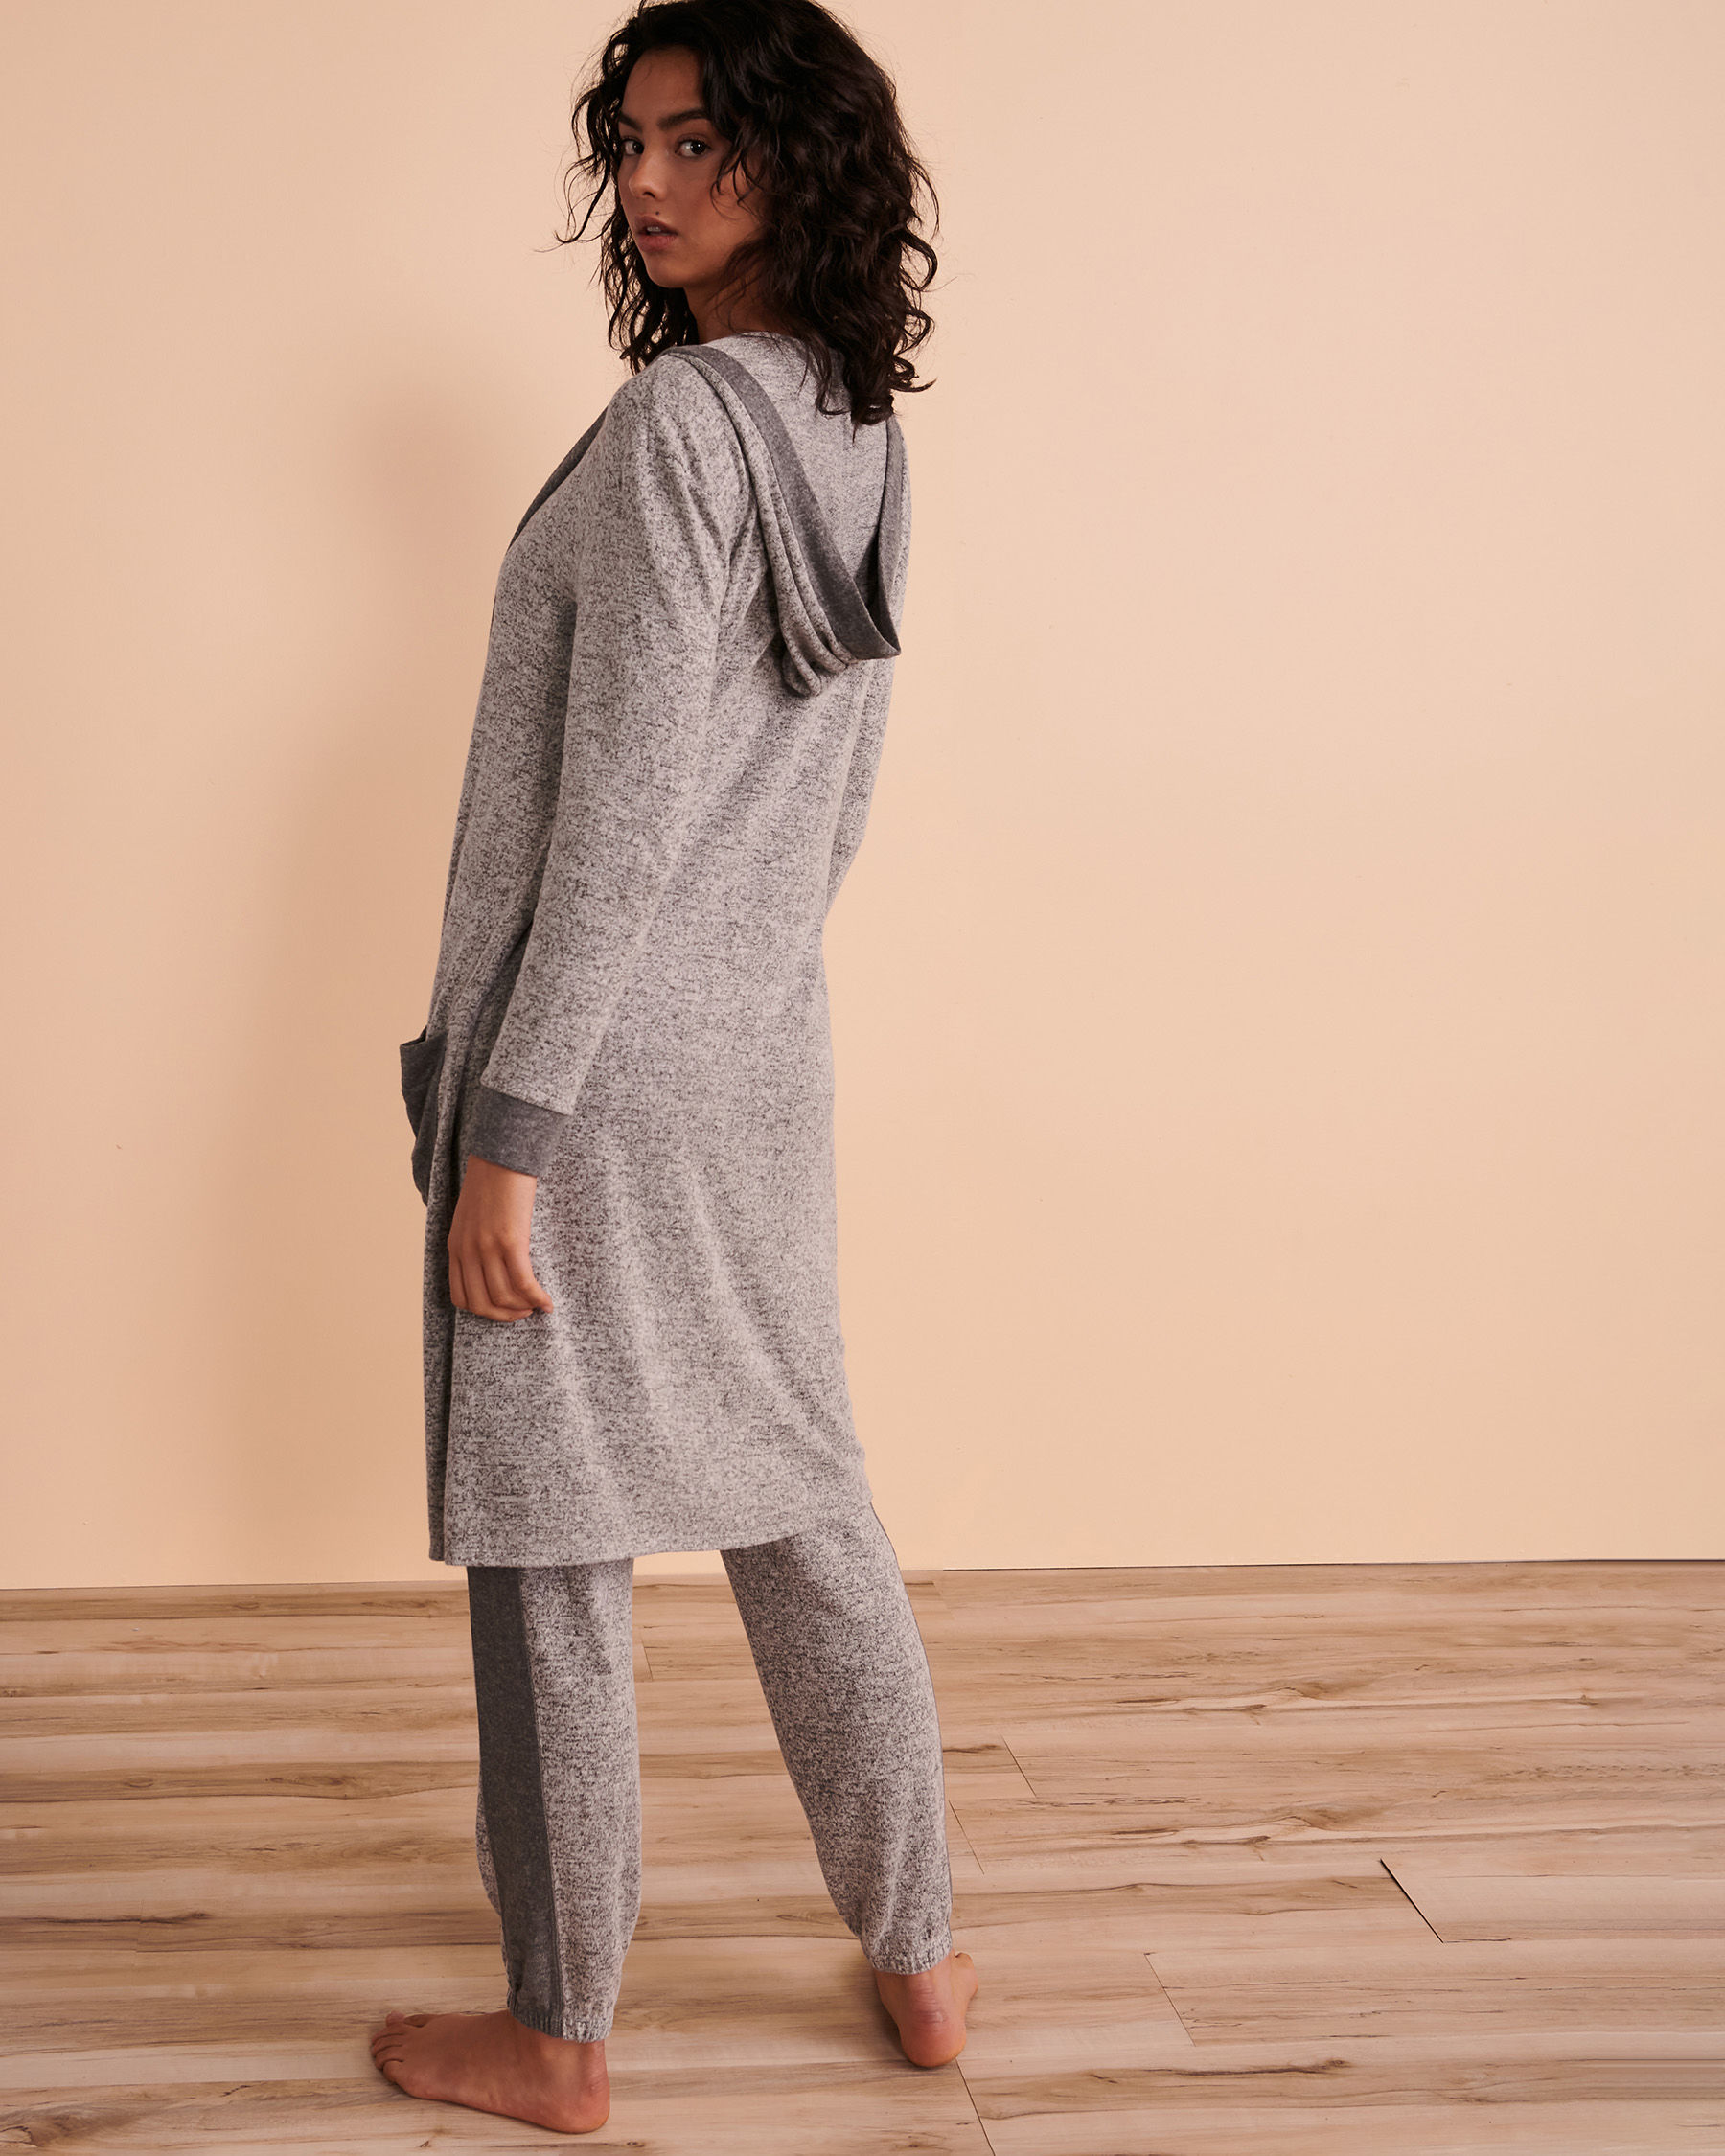 TURQUOISE COUTURE Long Sleeve Cardigan Soft grey 02400004 - View6